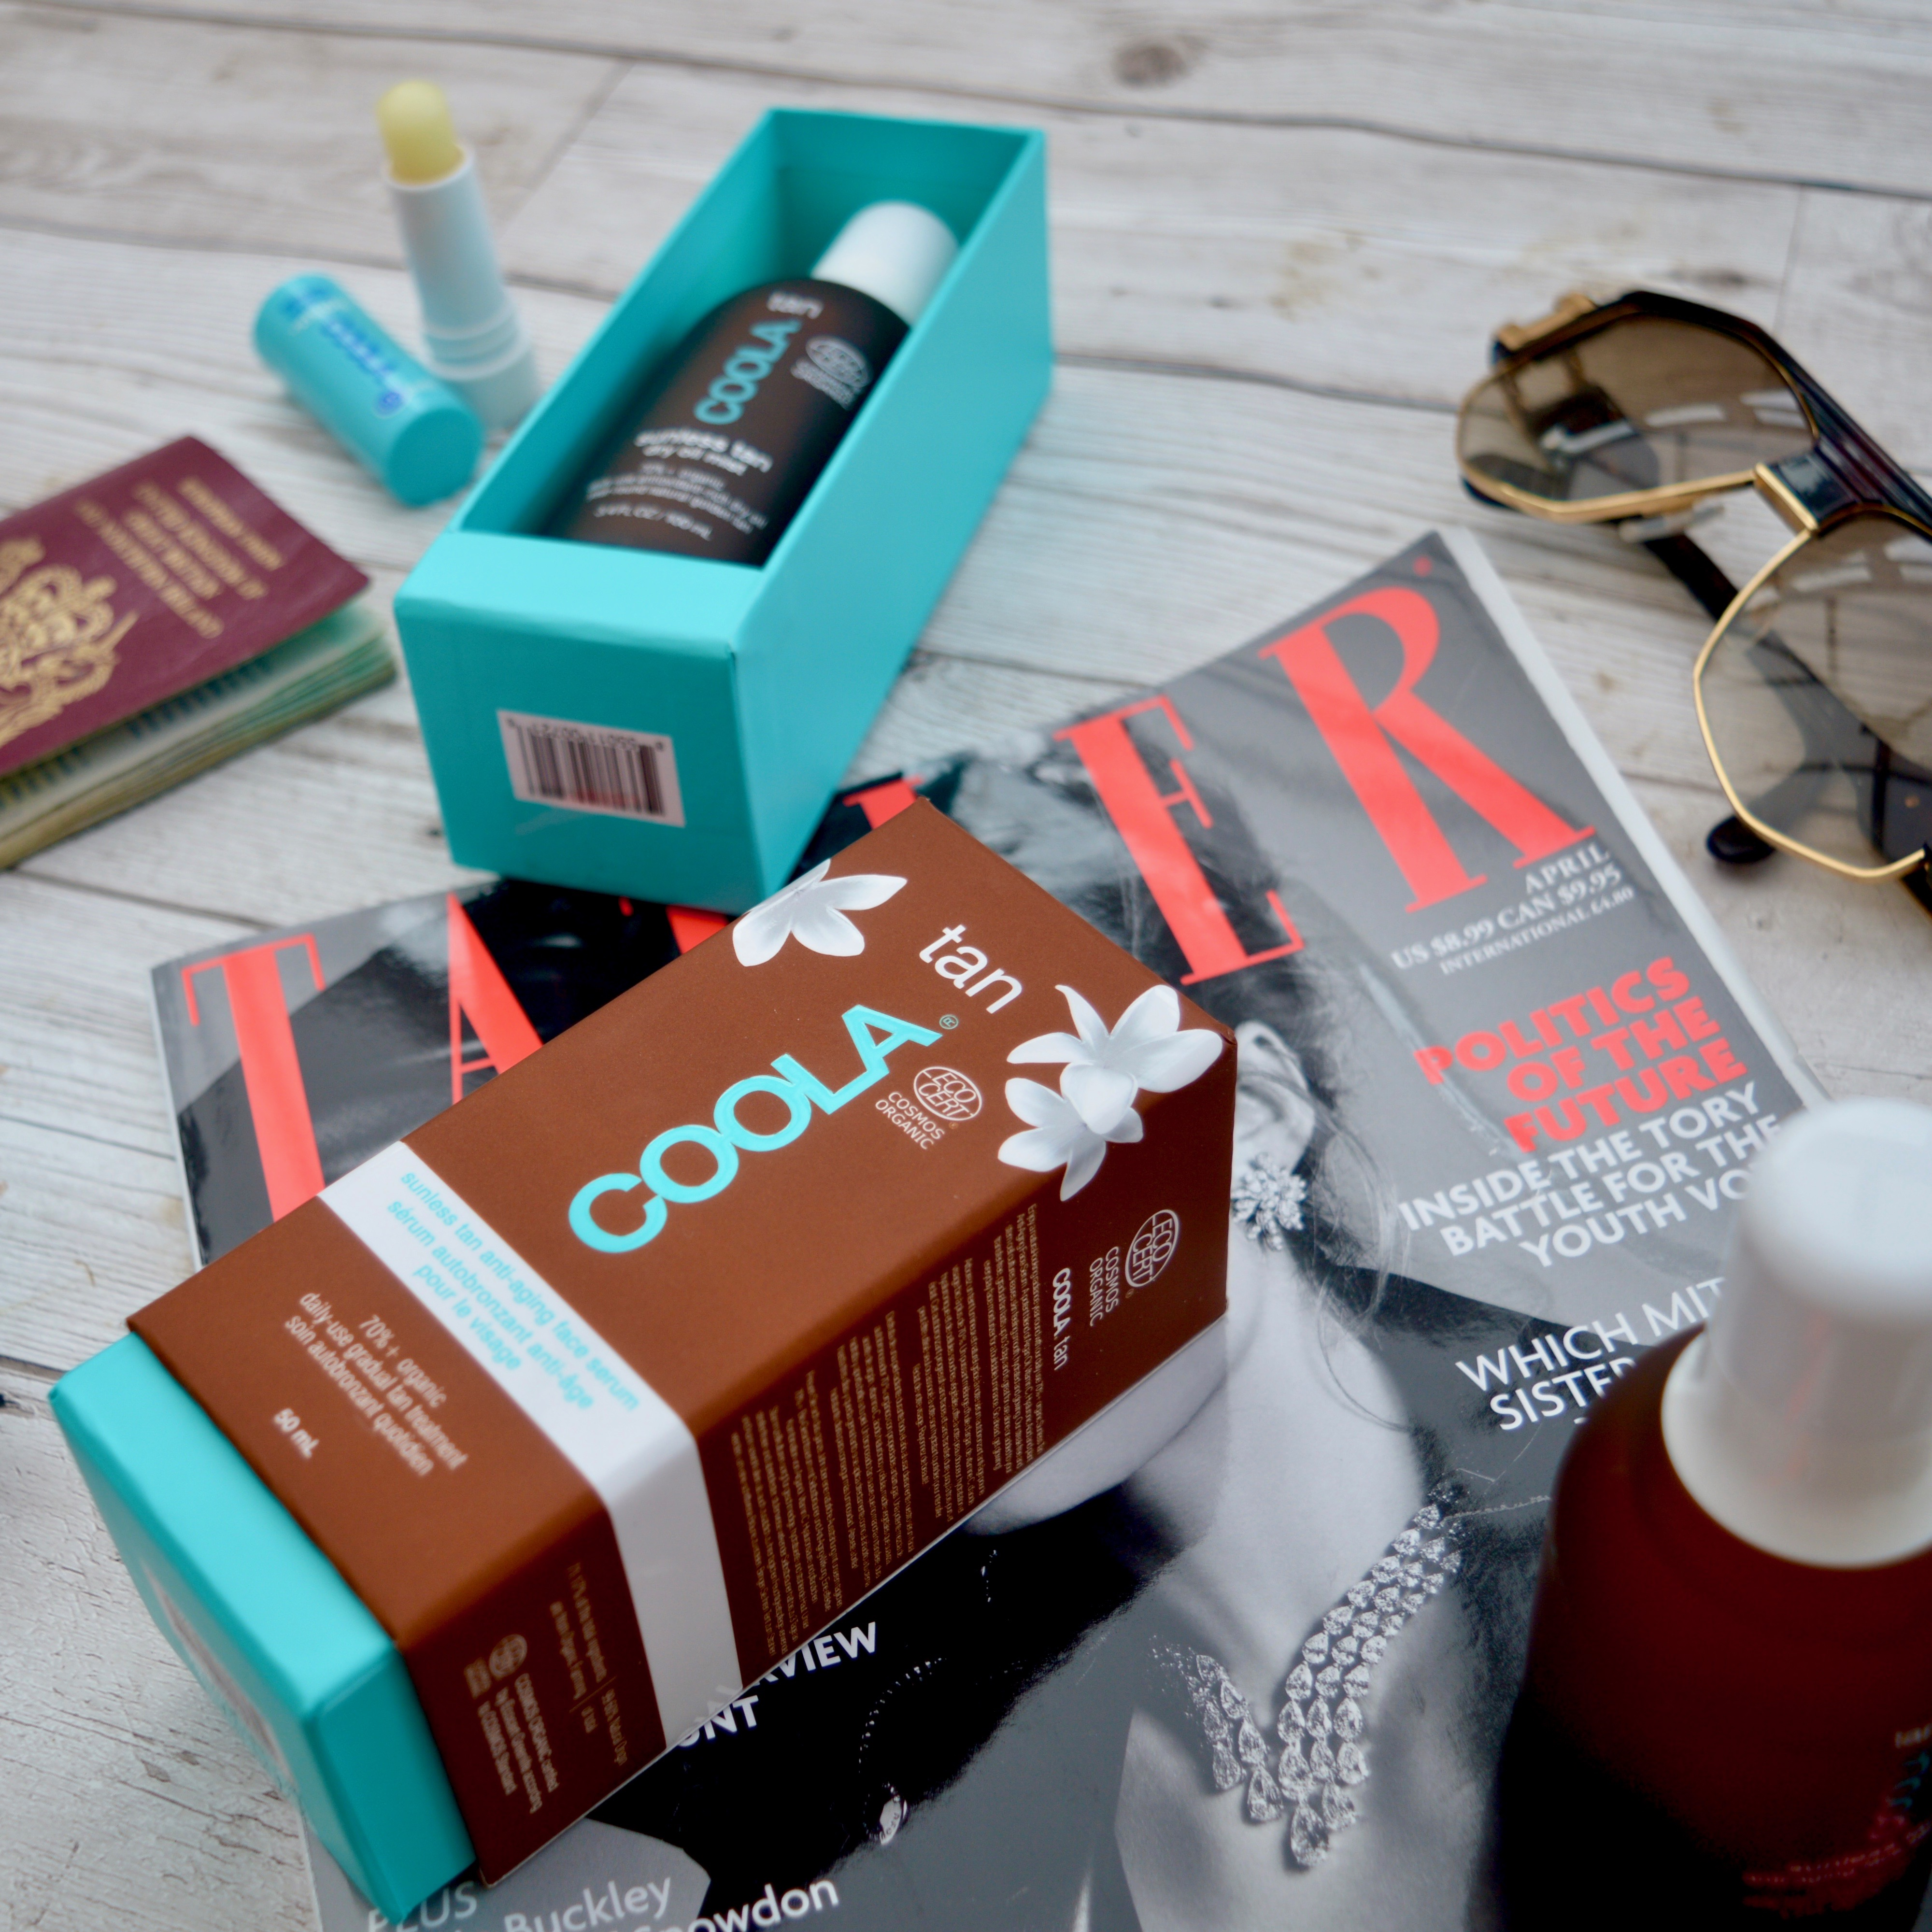 Coola False Tan Review | Cult Beauty | Elle Blonde Luxury Lifestyle Destination Blog